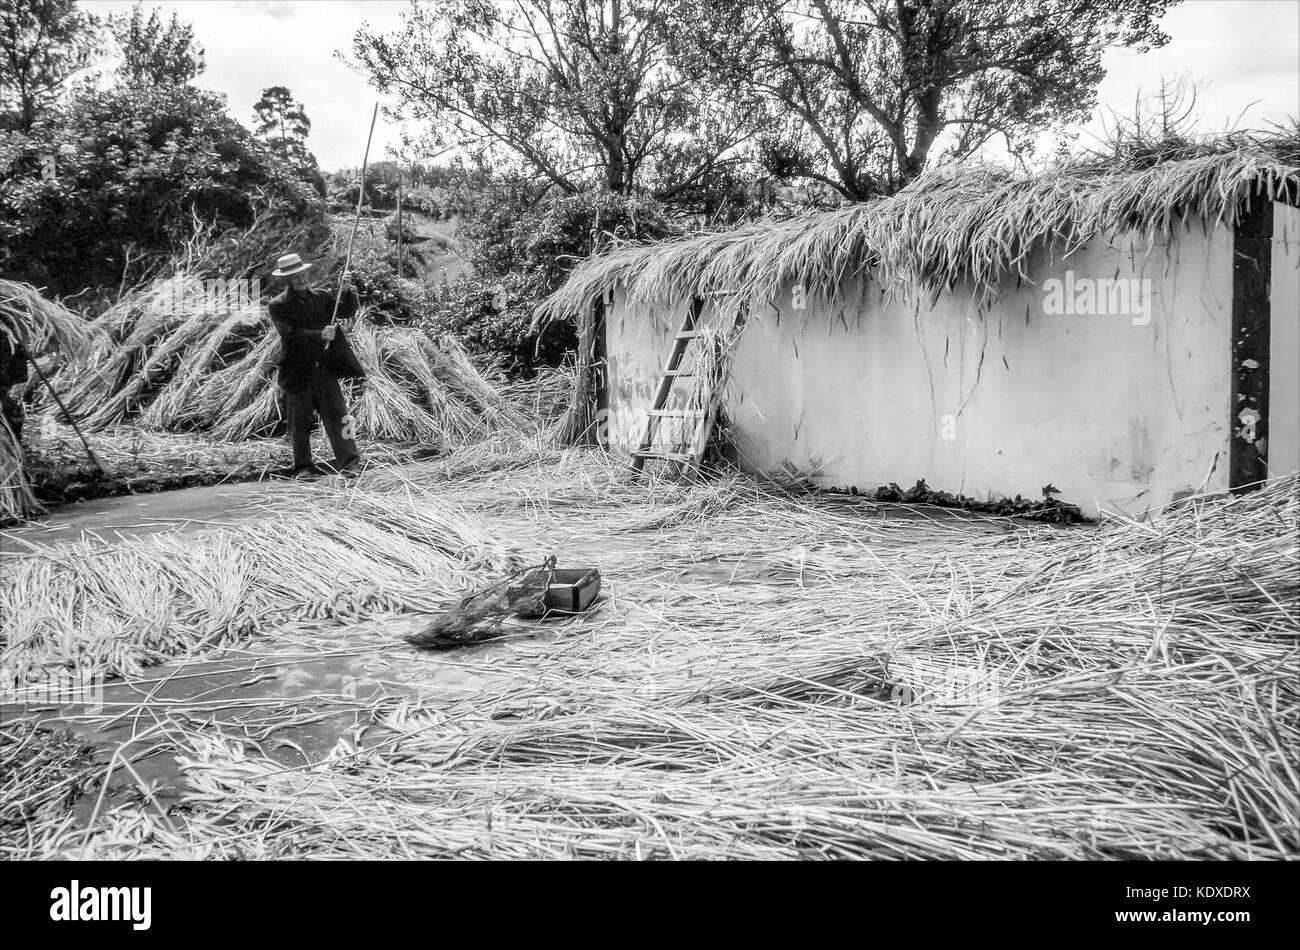 An elderly Azorian craftsman flails freshly harvested straw to be made into roof thatching and house brooms in Praia - Stock Image